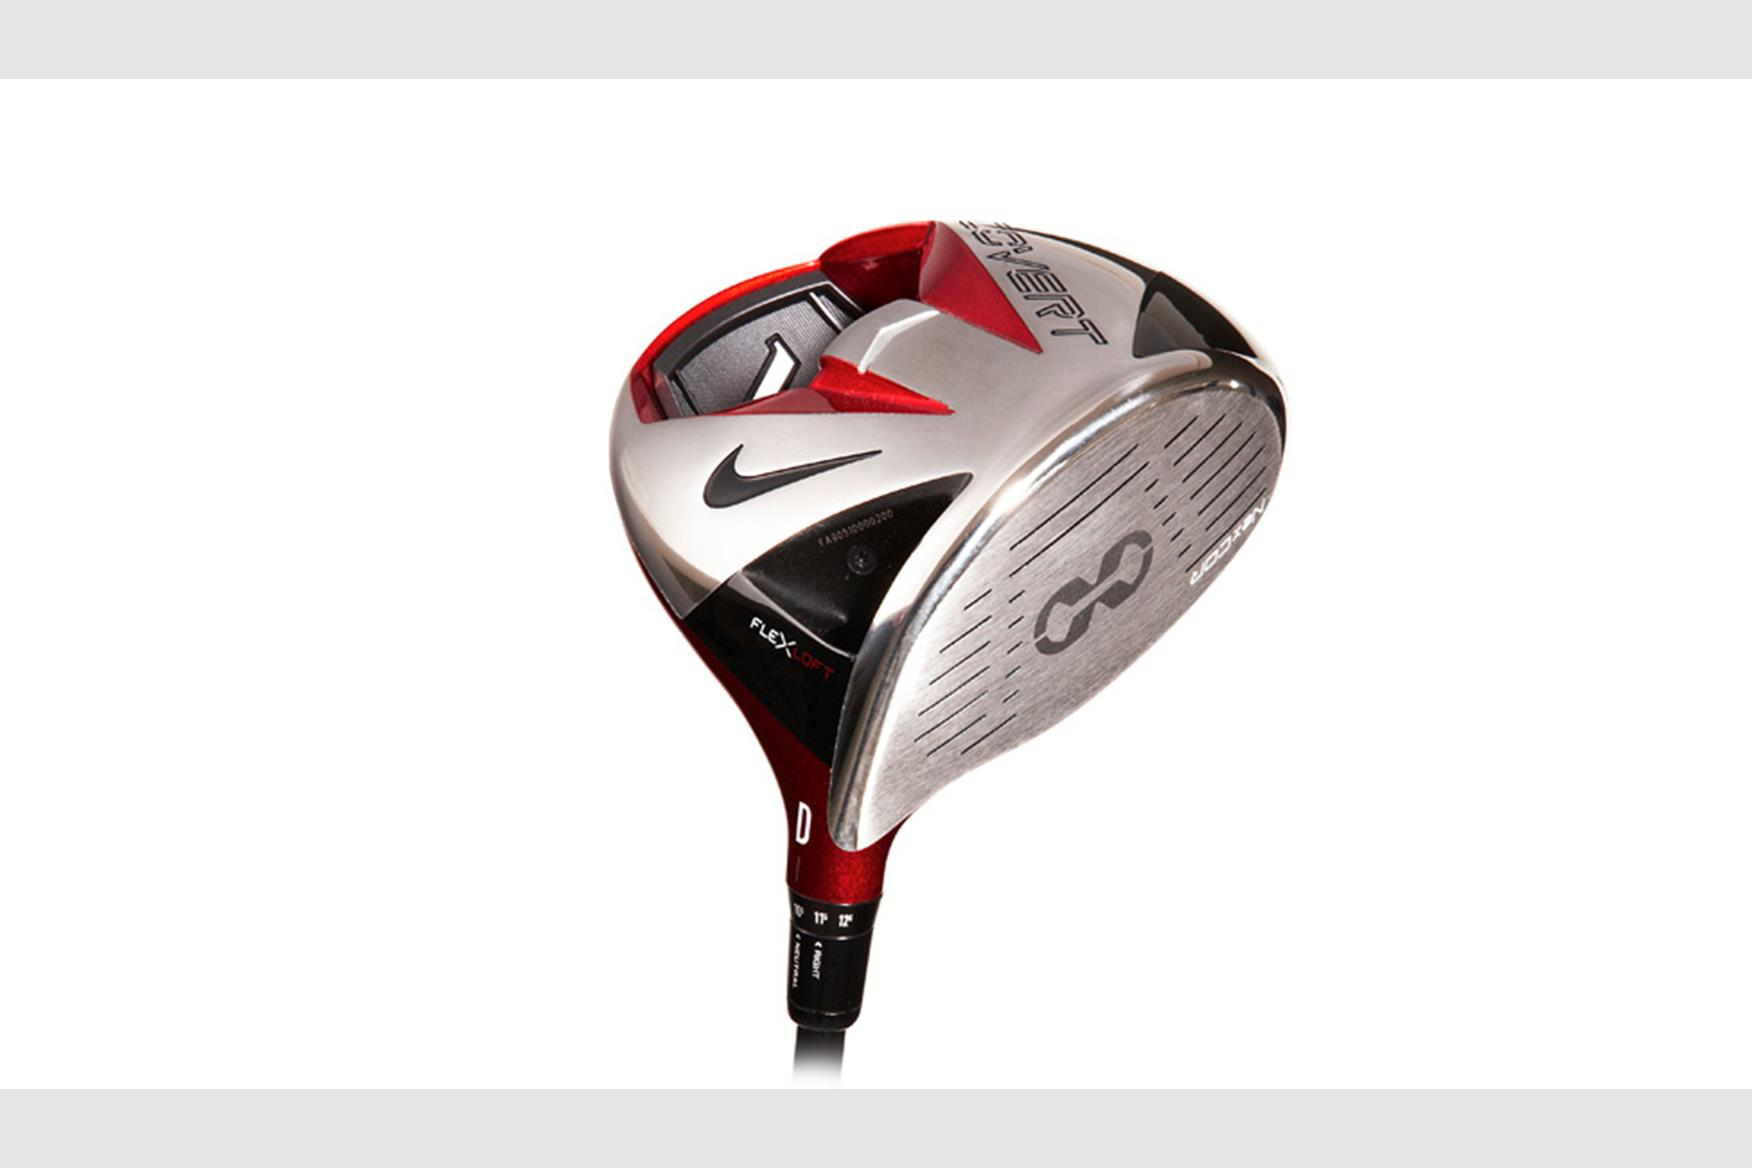 Drama sacerdote trabajo duro  Nike Golf VR_S Covert Driver Review | Equipment Reviews | Today's Golfer